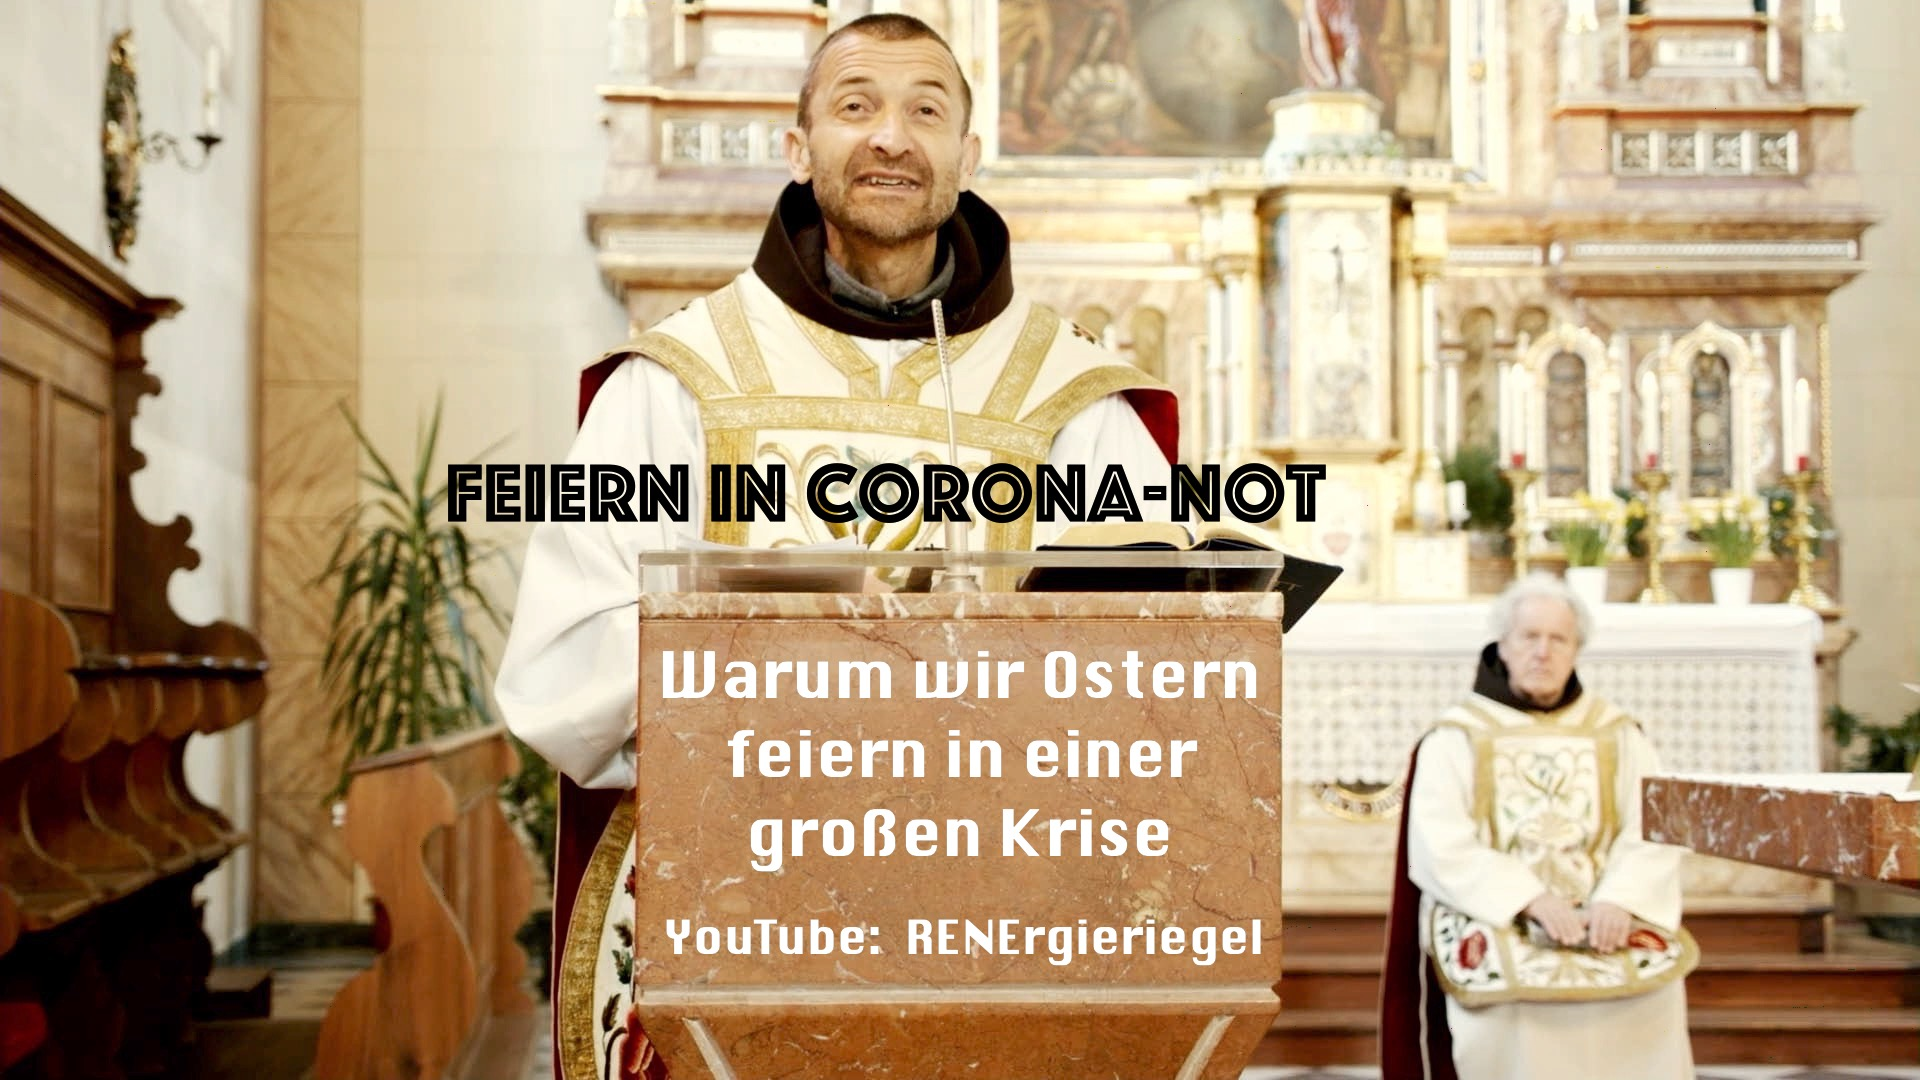 Feiern in Corona-Not